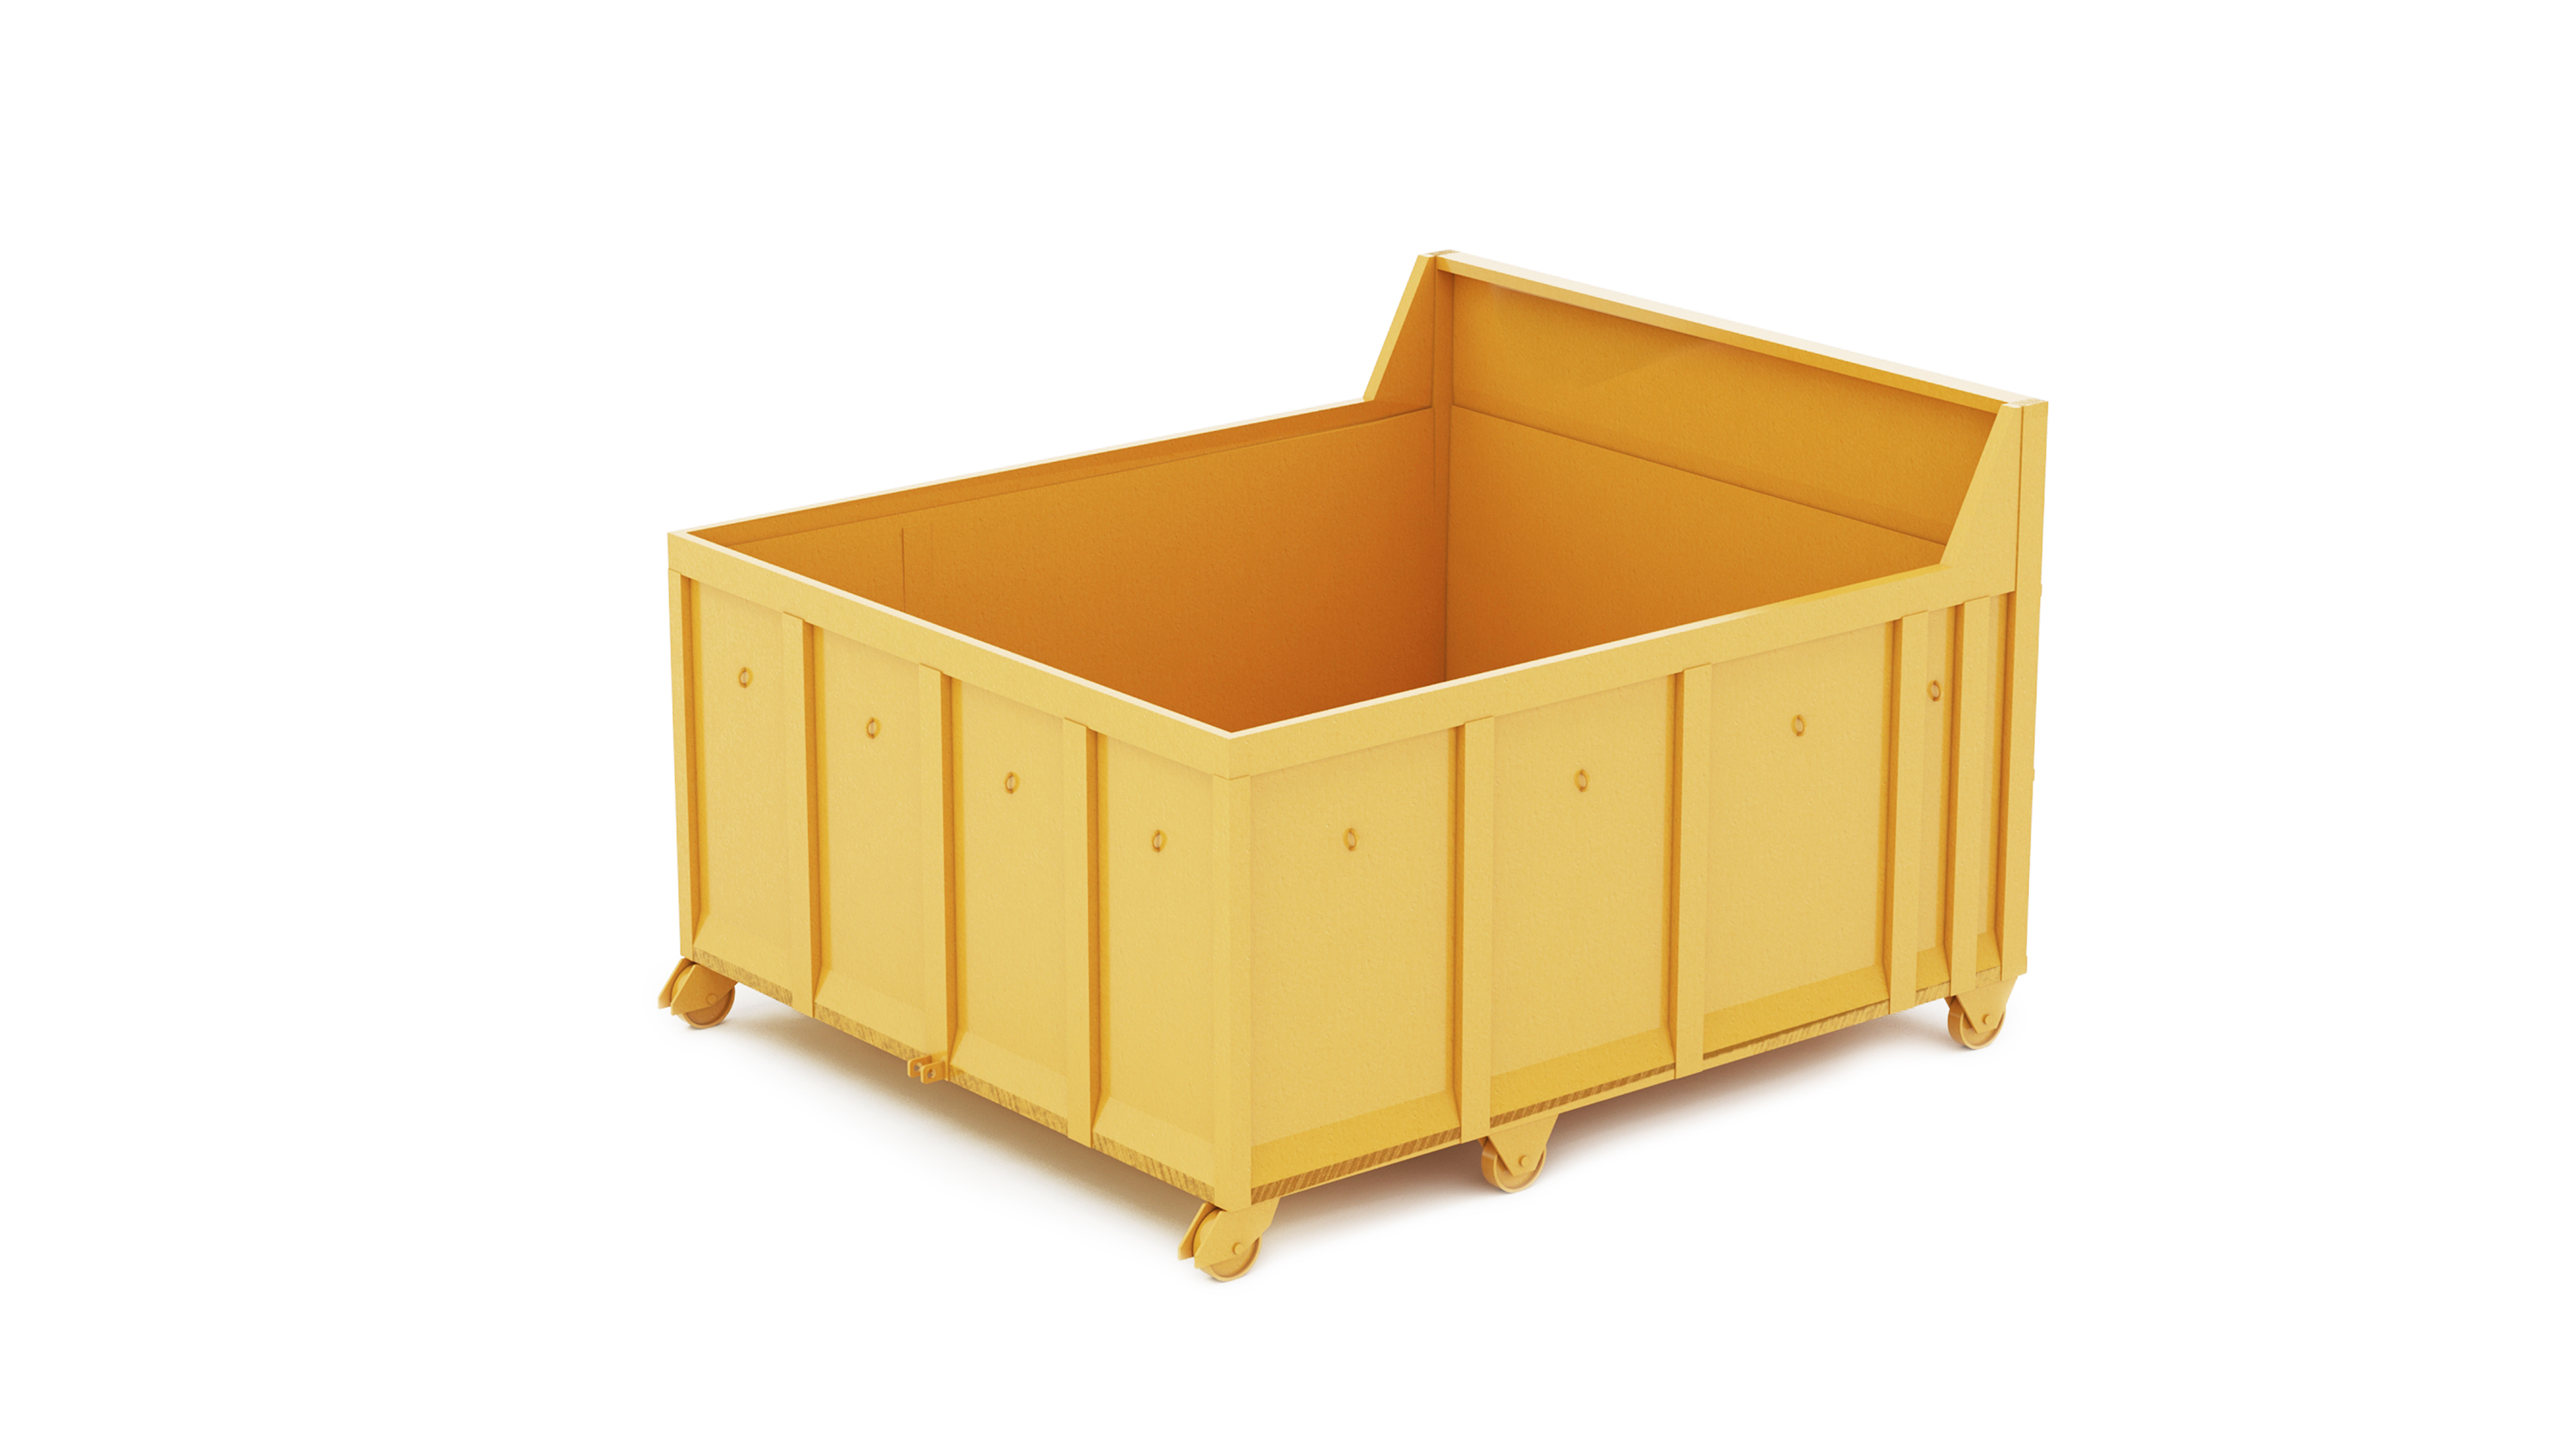 Container Abroll basculabil.jpg